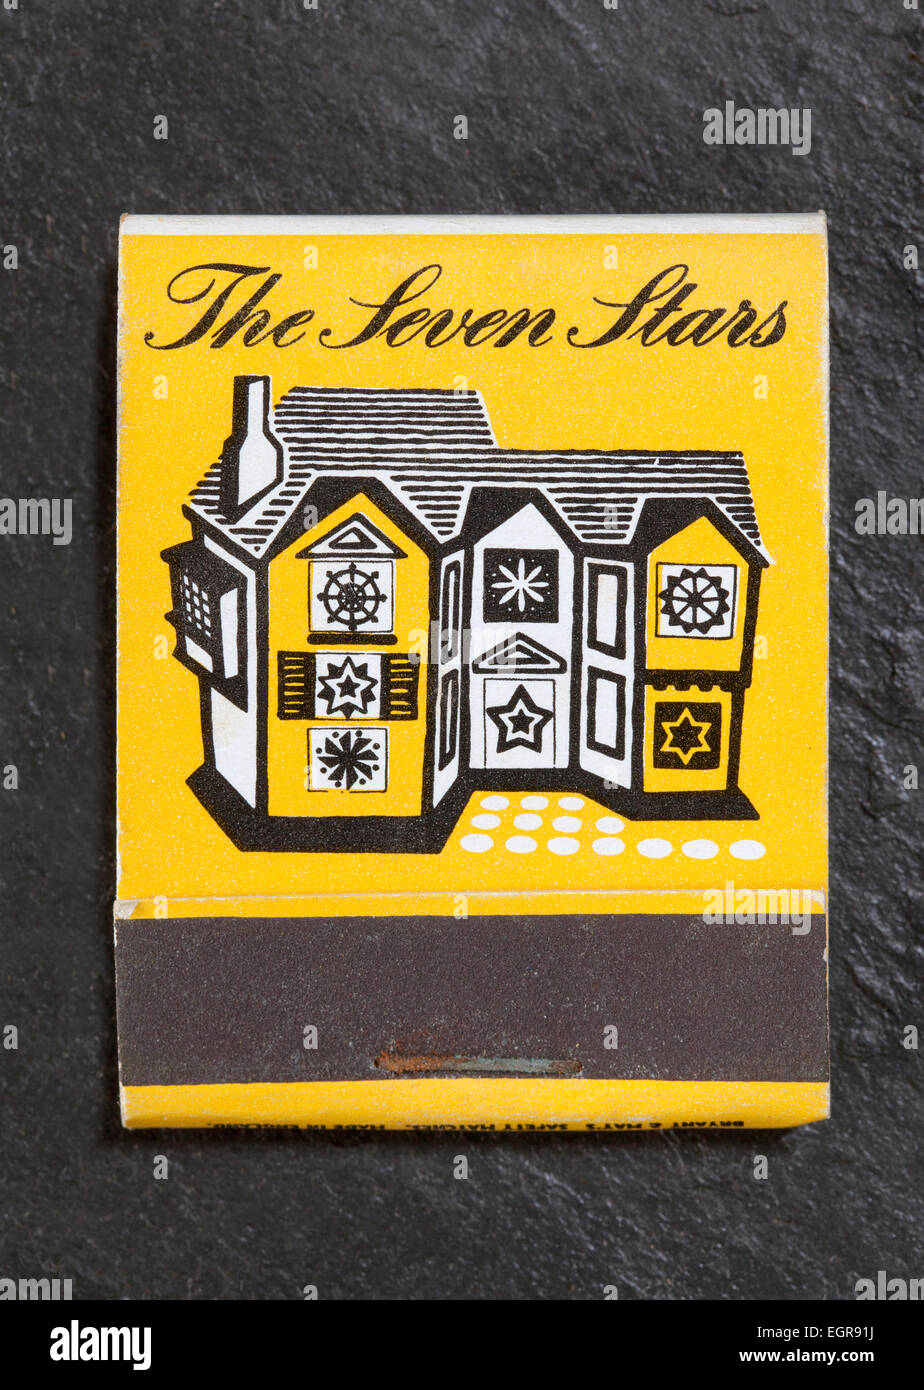 Vintage British Matchbook advertising The Sevens Stars Lyons Corner House England UK - Stock Image